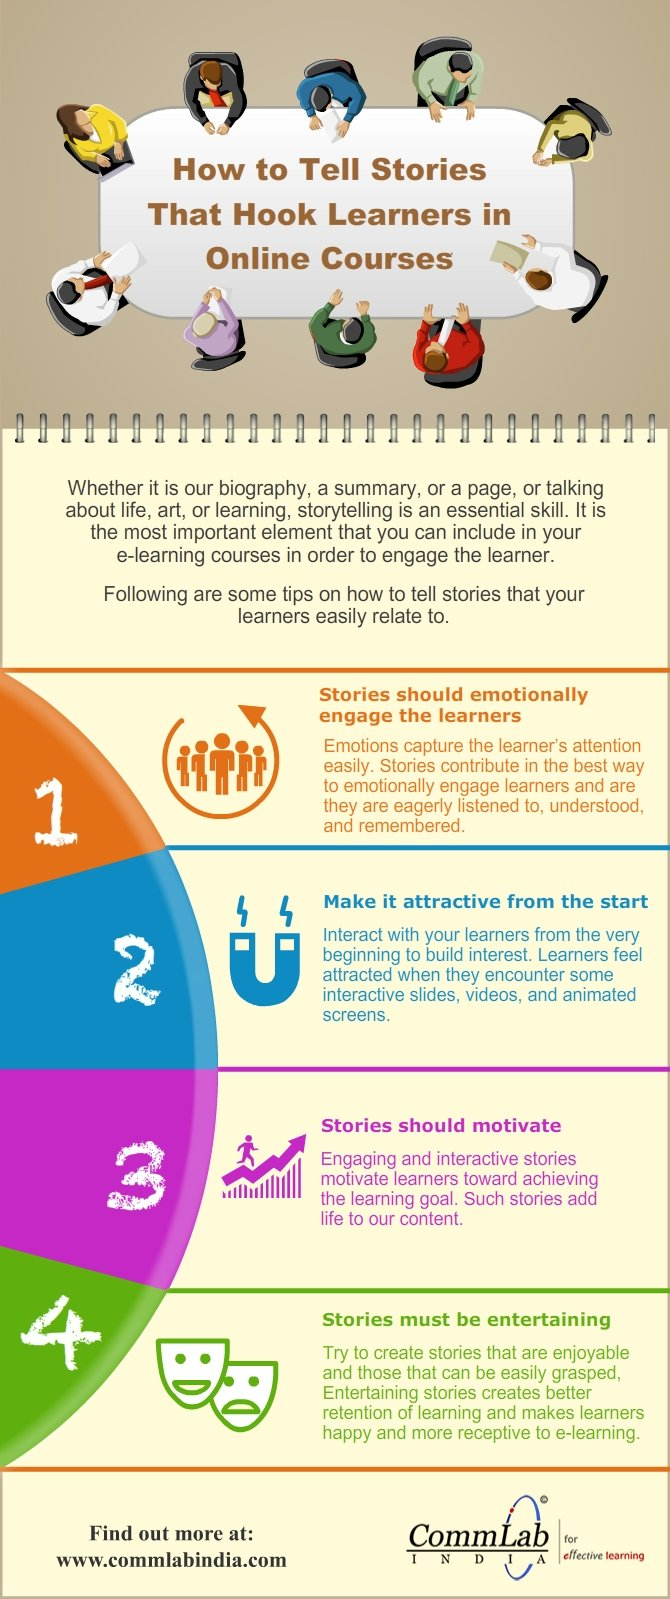 How to Tell Stories That Hook Learners in Online Courses [Infographic]